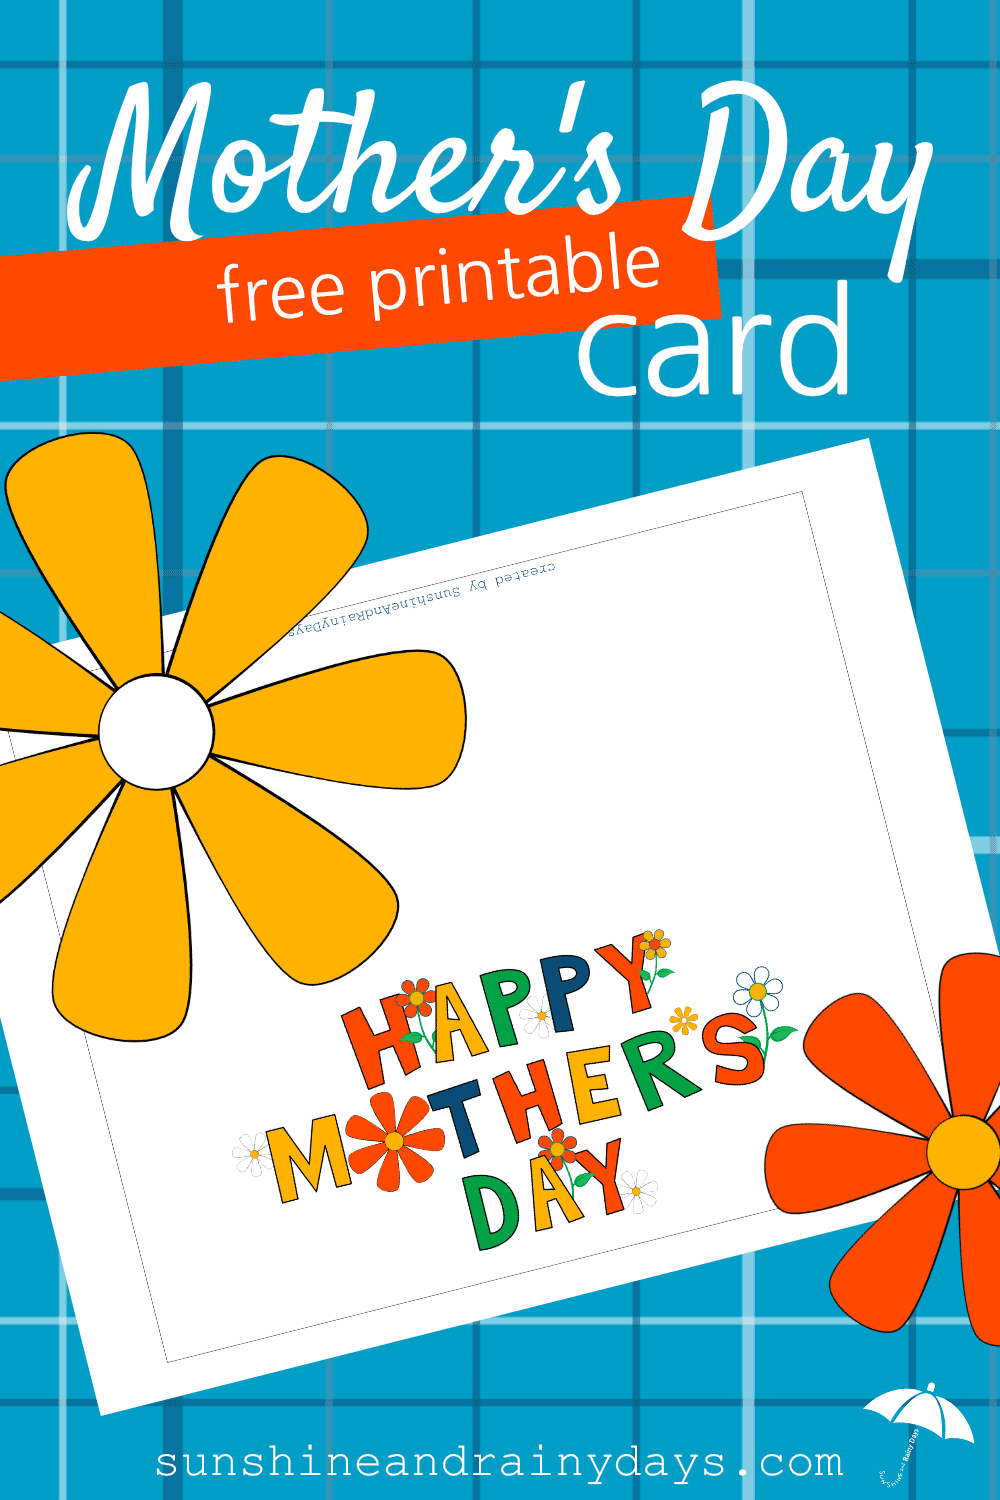 We are here to make Mother's Day just a little bit easier for you with our Mother's Day Free Printable Card! Mother's Day Printables save time, money, and let you focus on the gift you want to purchase for your mom!